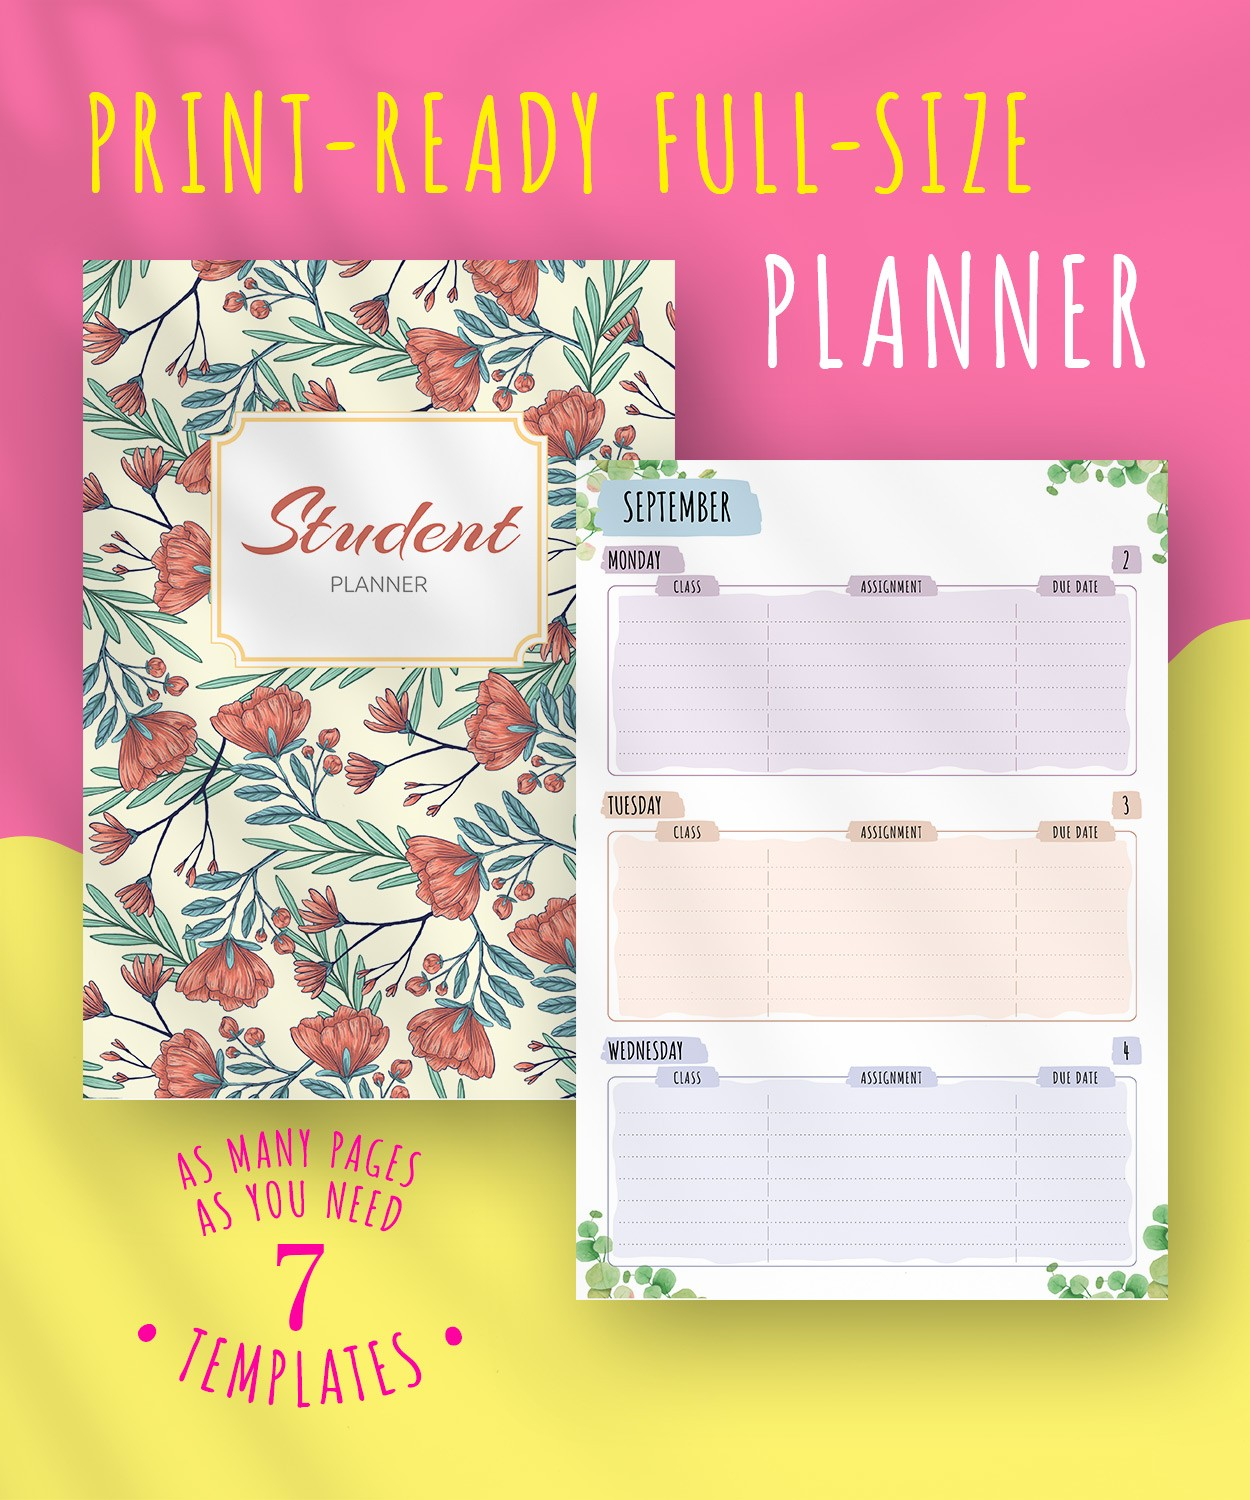 image about Printable Student Planner Download titled Absolutely free Printable Scholar Planner - Floral Layout PDF Obtain